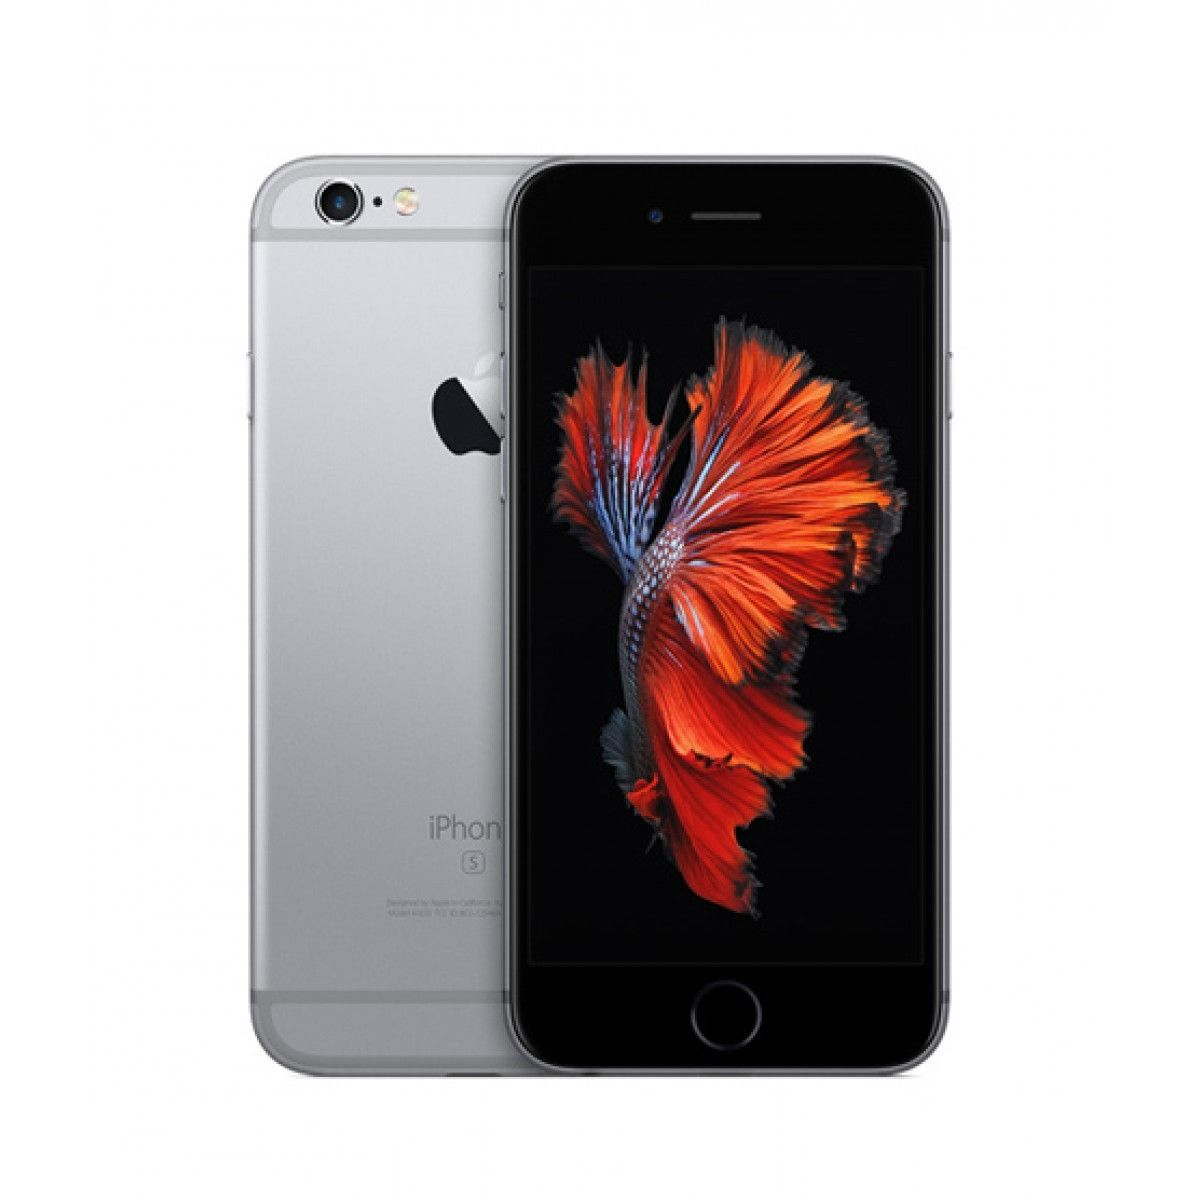 Apple Iphone 6s With Facetime 4g Lte Space Grey 64gb Apple Iphone Apple Iphone 6s Plus Iphone